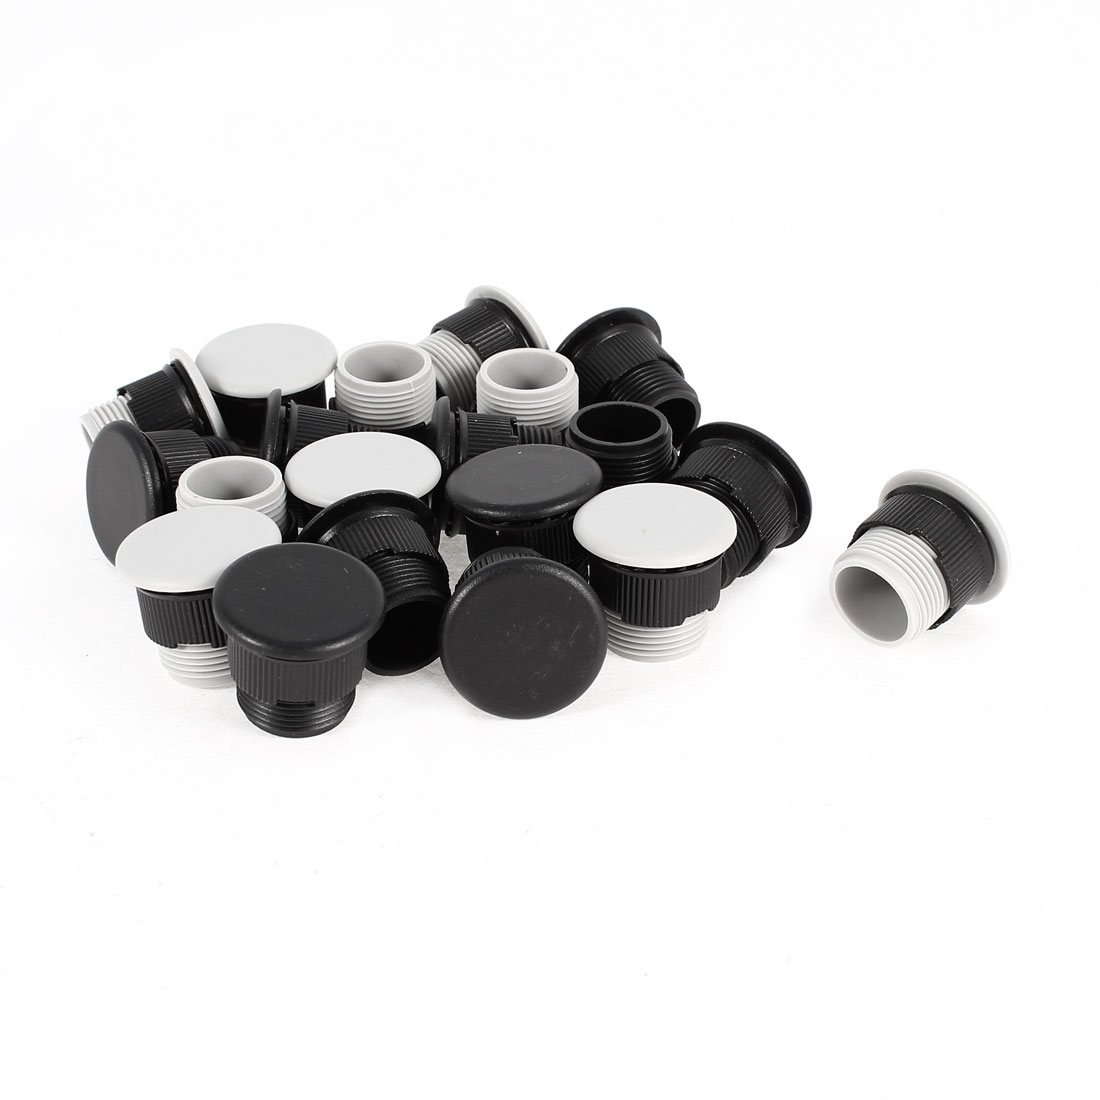 20 Pcs Gray+Black Plastic Panel Plug for 16mm Mount Hole Push Button Switch